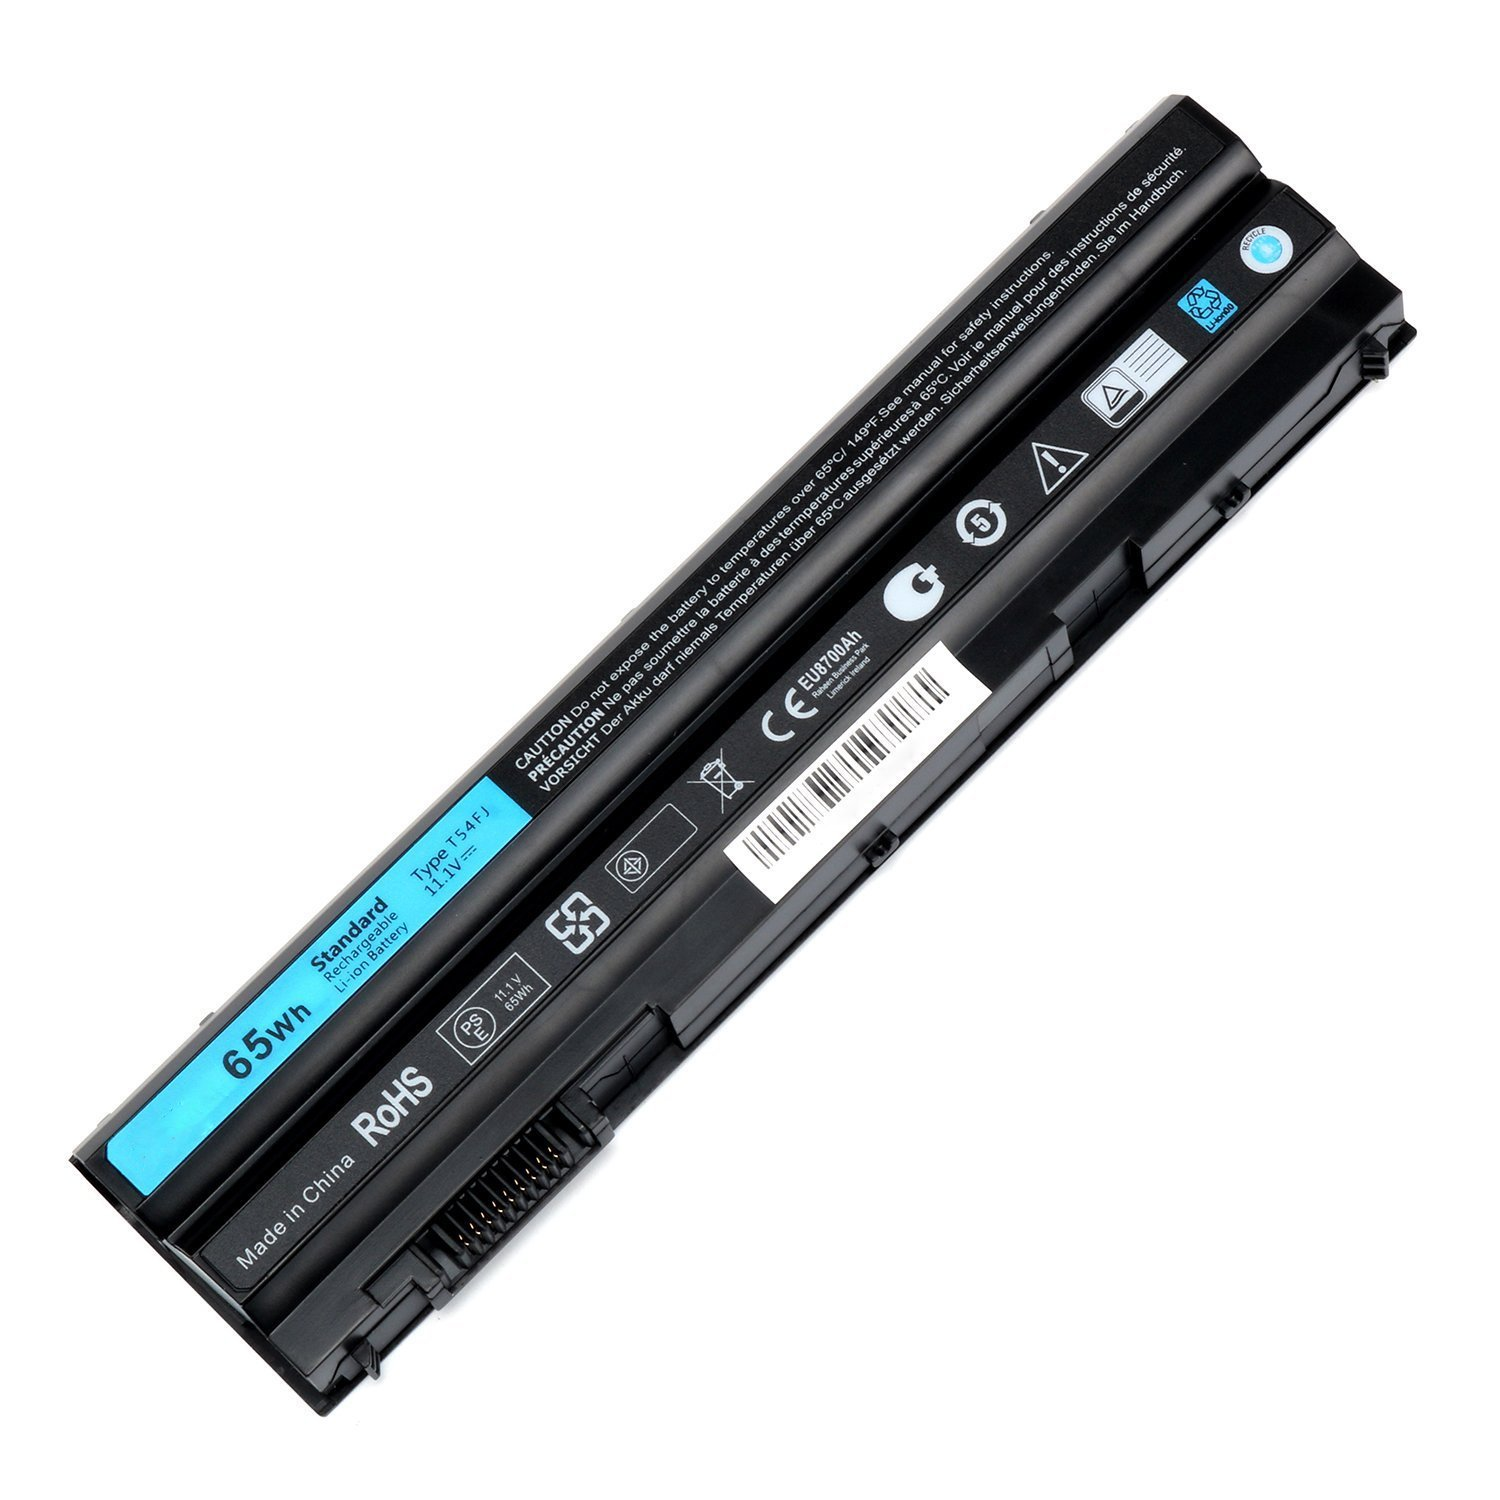 SOLICE New 11.1V 65Wh T54FJ E5520 Laptop Battery for Dell Latitude E5420 E5520 E6420 E6520 M5Y0X 312-1163 HCJWT 7FJ92--12 Months Warranty